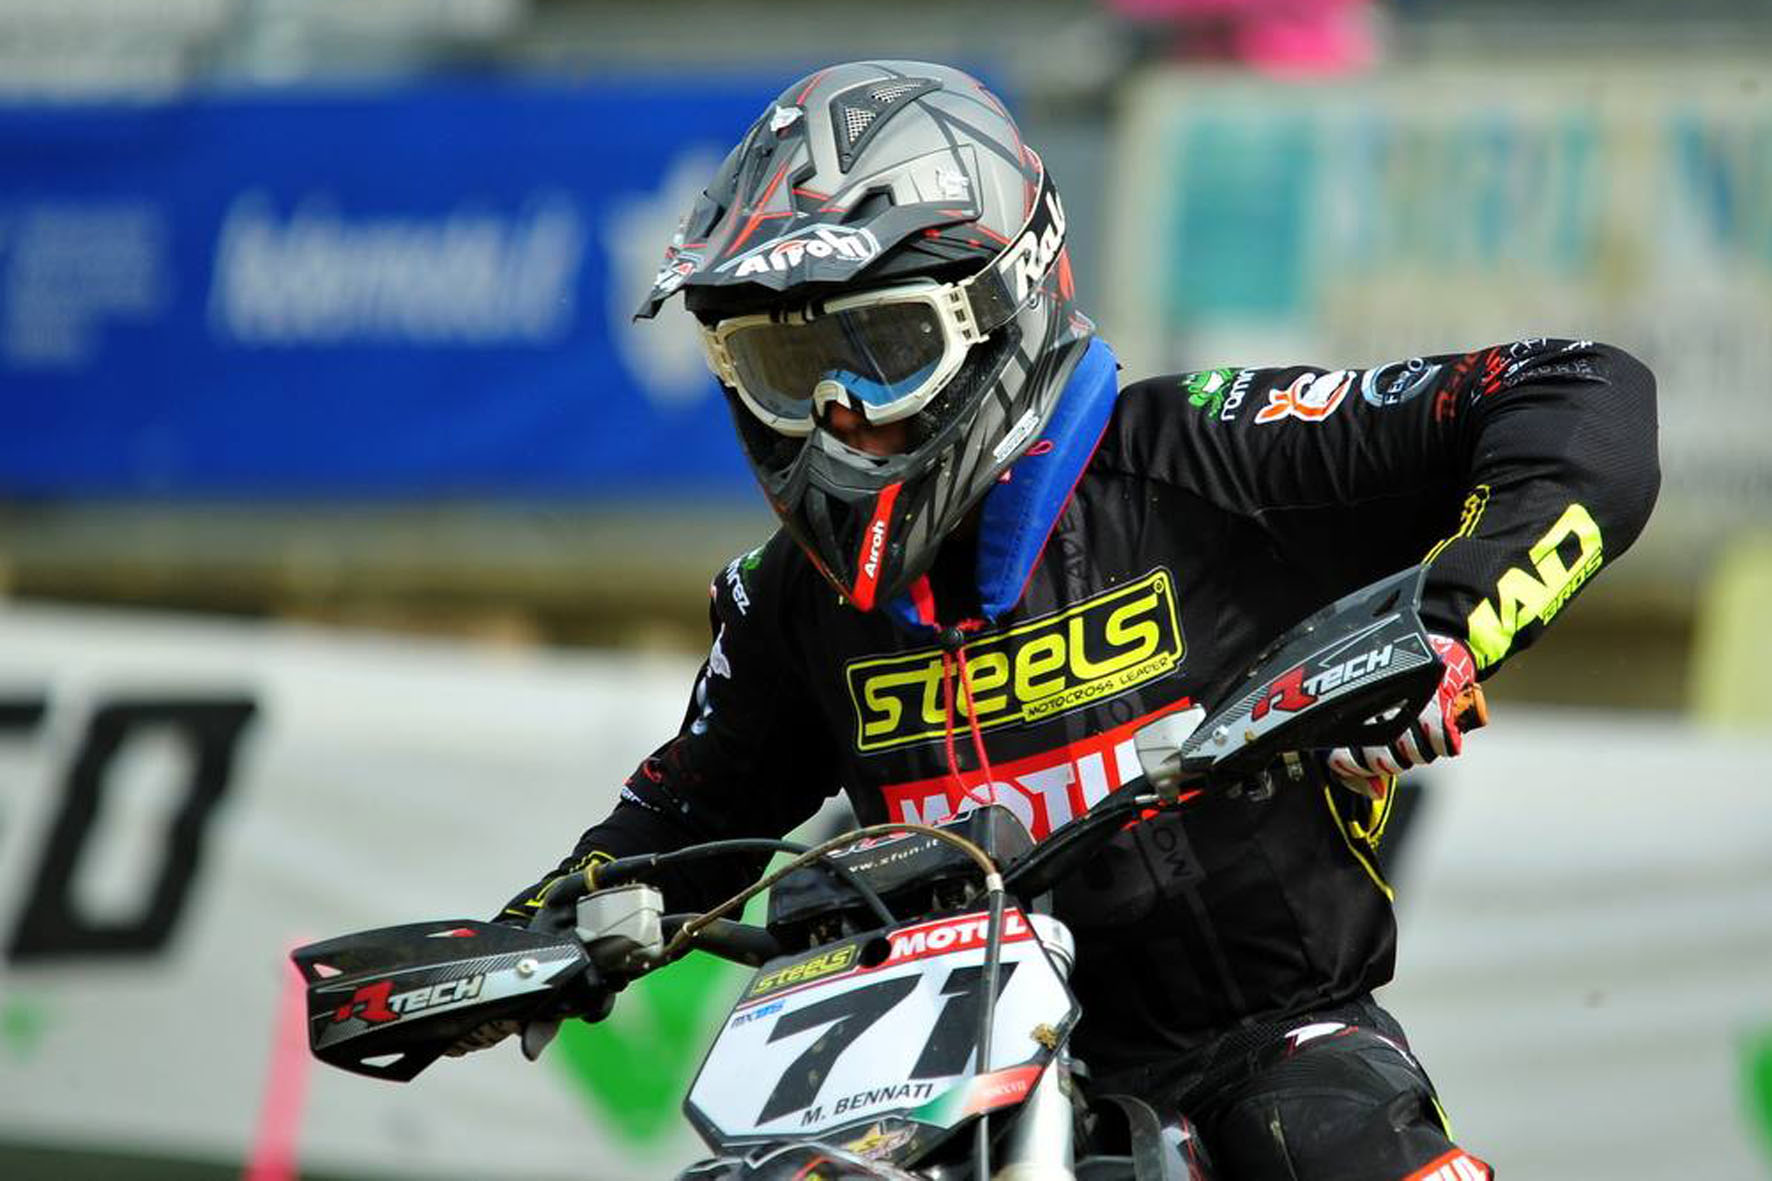 Steels Motocross - Morgan Bennati (14)